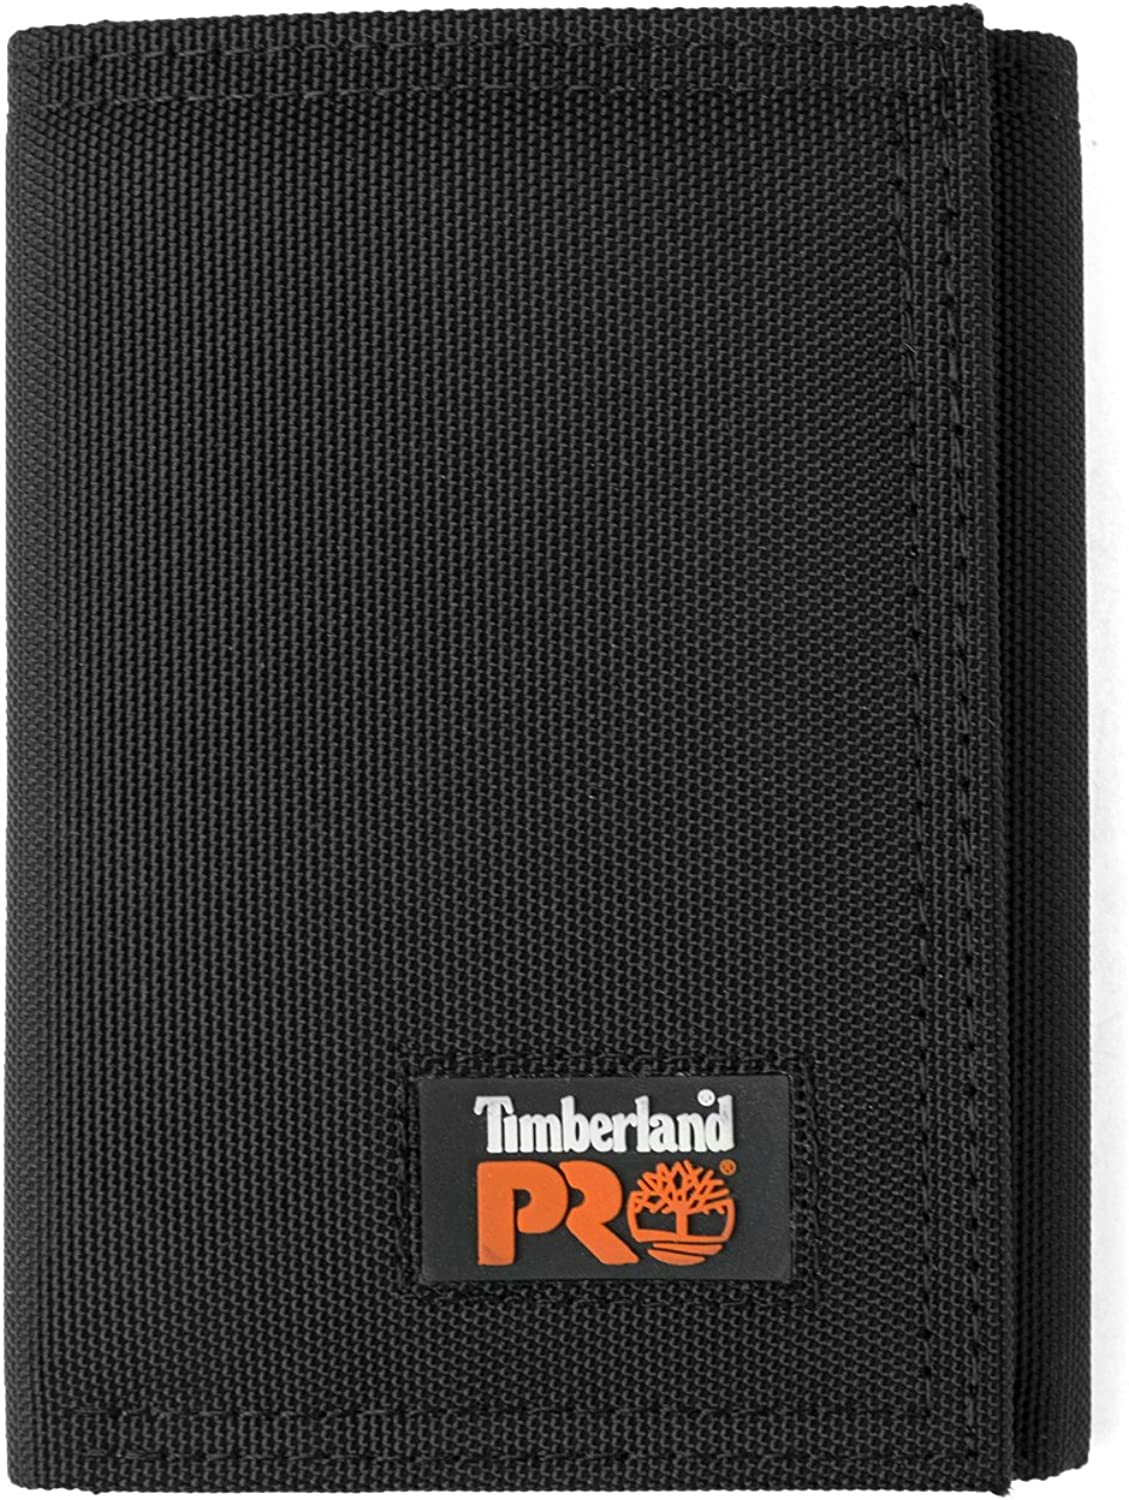 Timberland PRO Men's Cordura Nylon RFID Trifold Wallet with ID Window